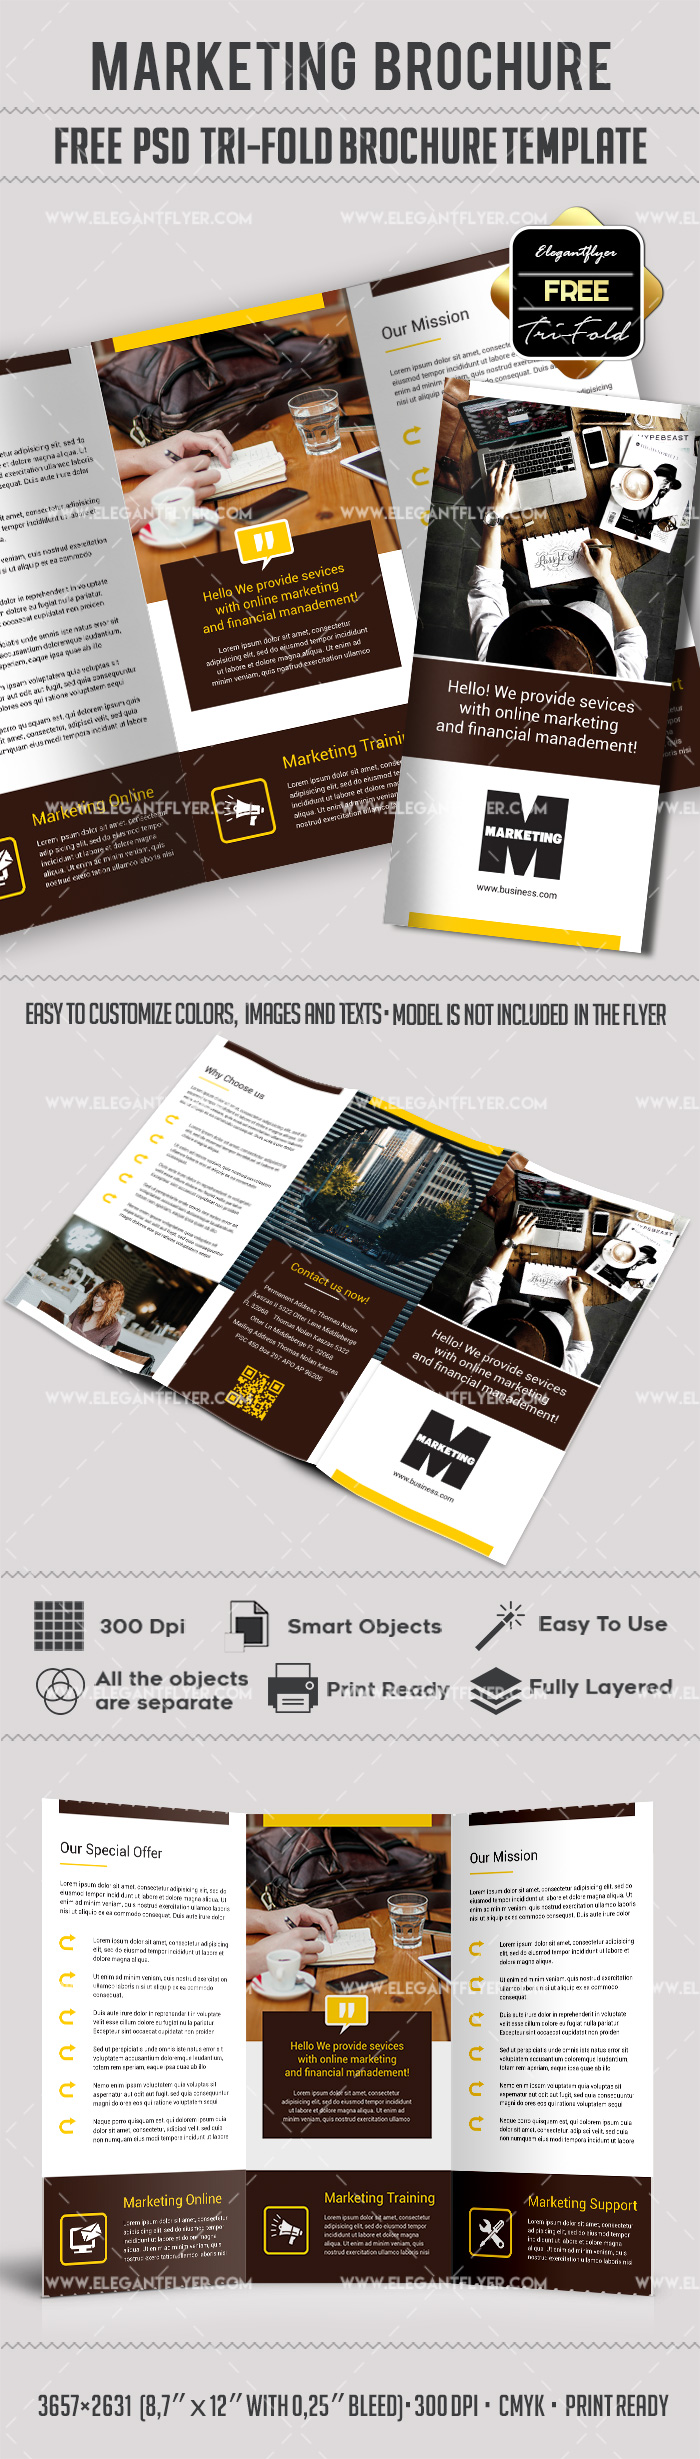 Marketing free tri fold psd brochure template by for Tri fold brochure template psd